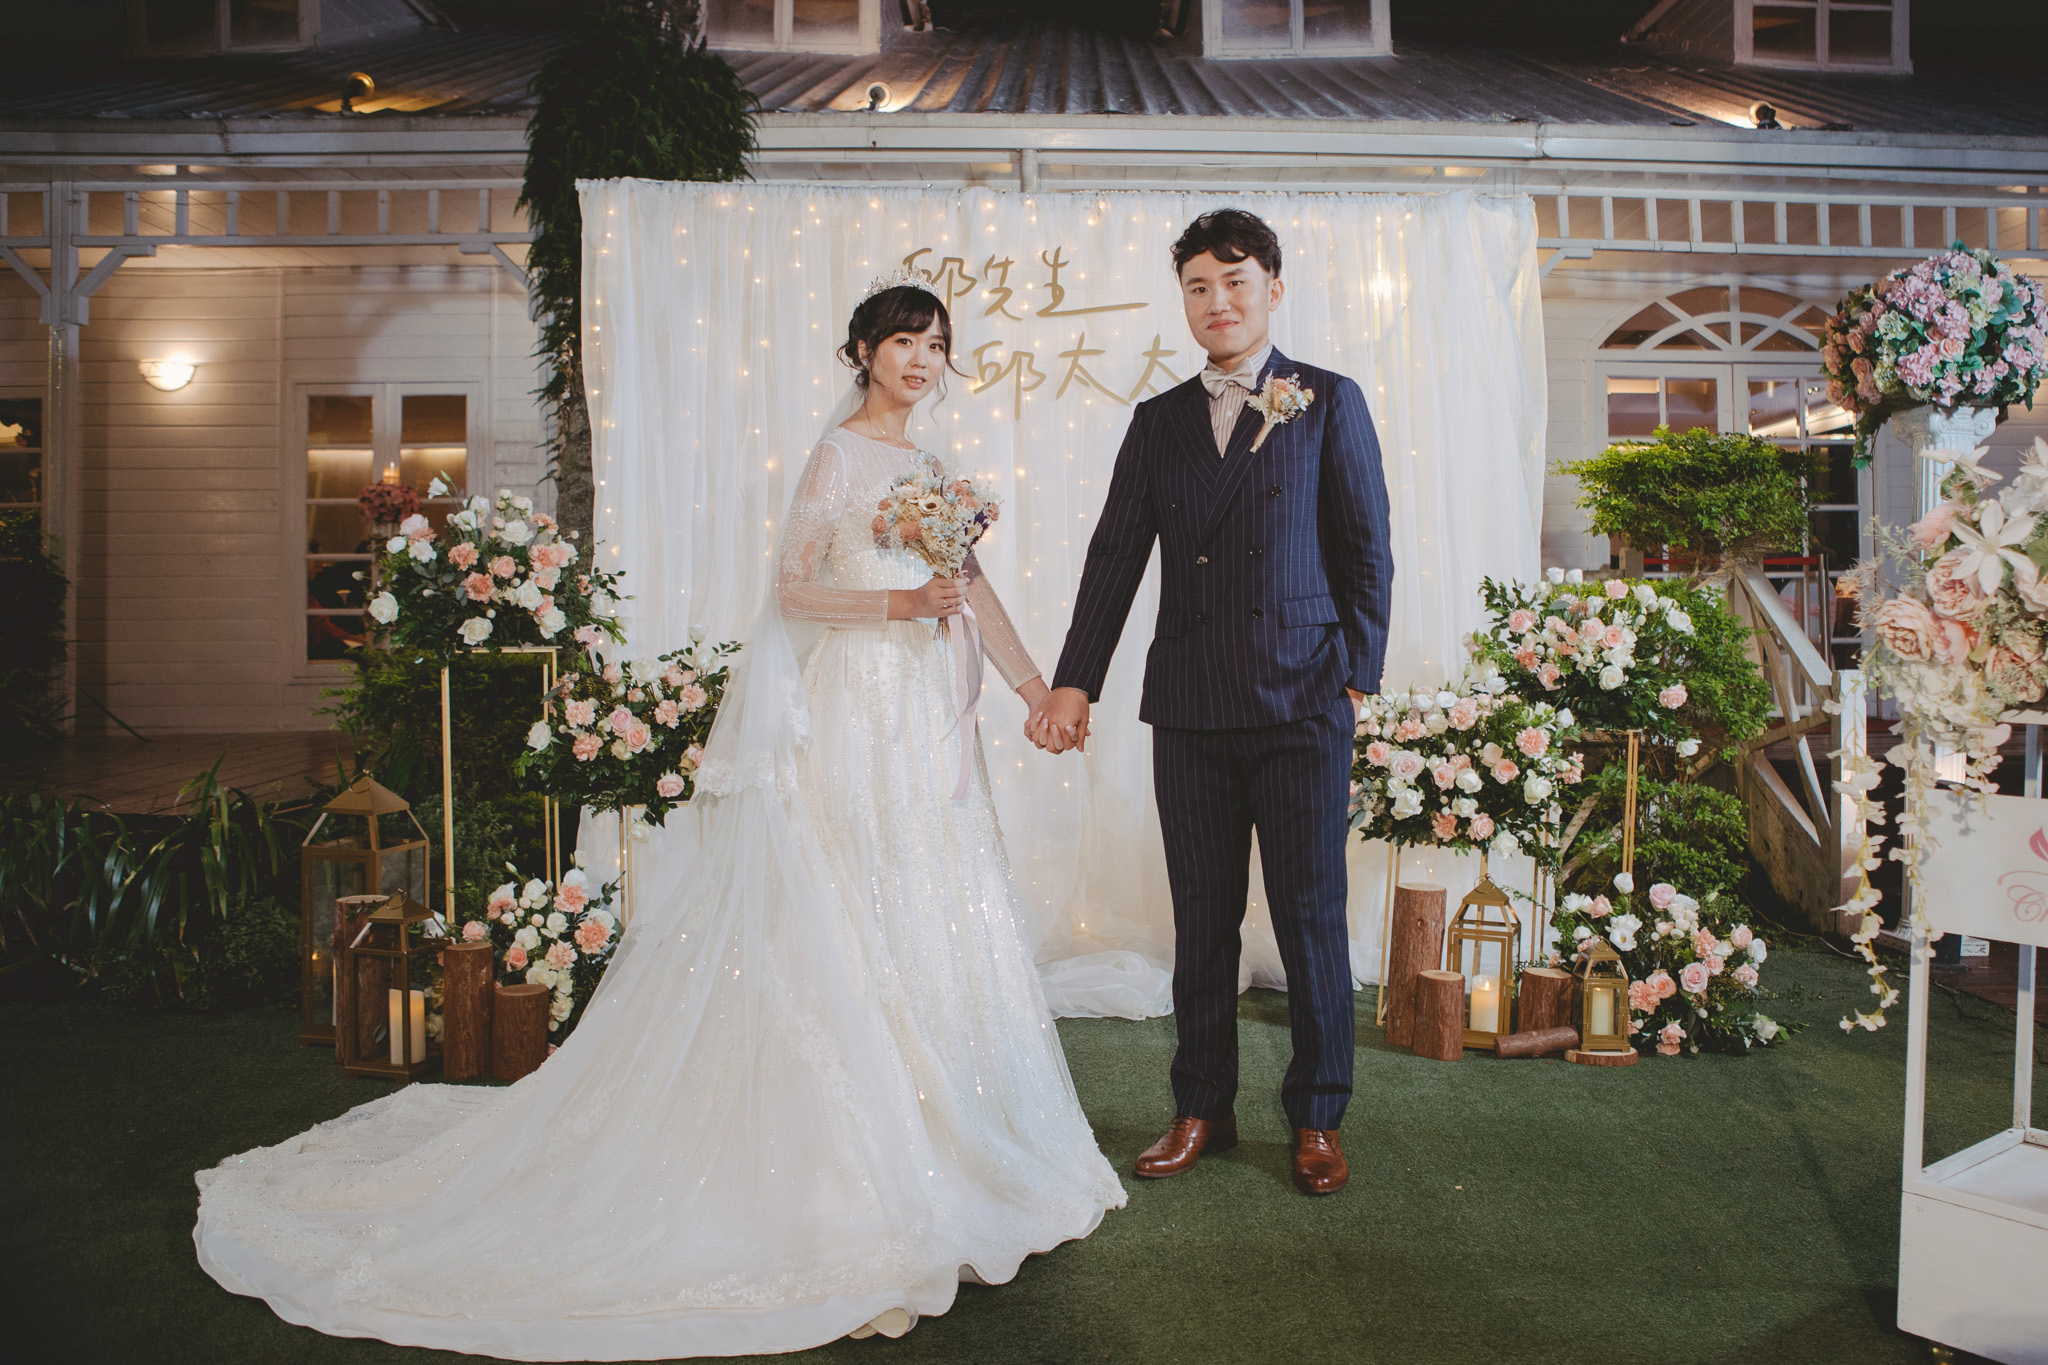 EW Easternwedding 婚攝 居米 婚宴 青青